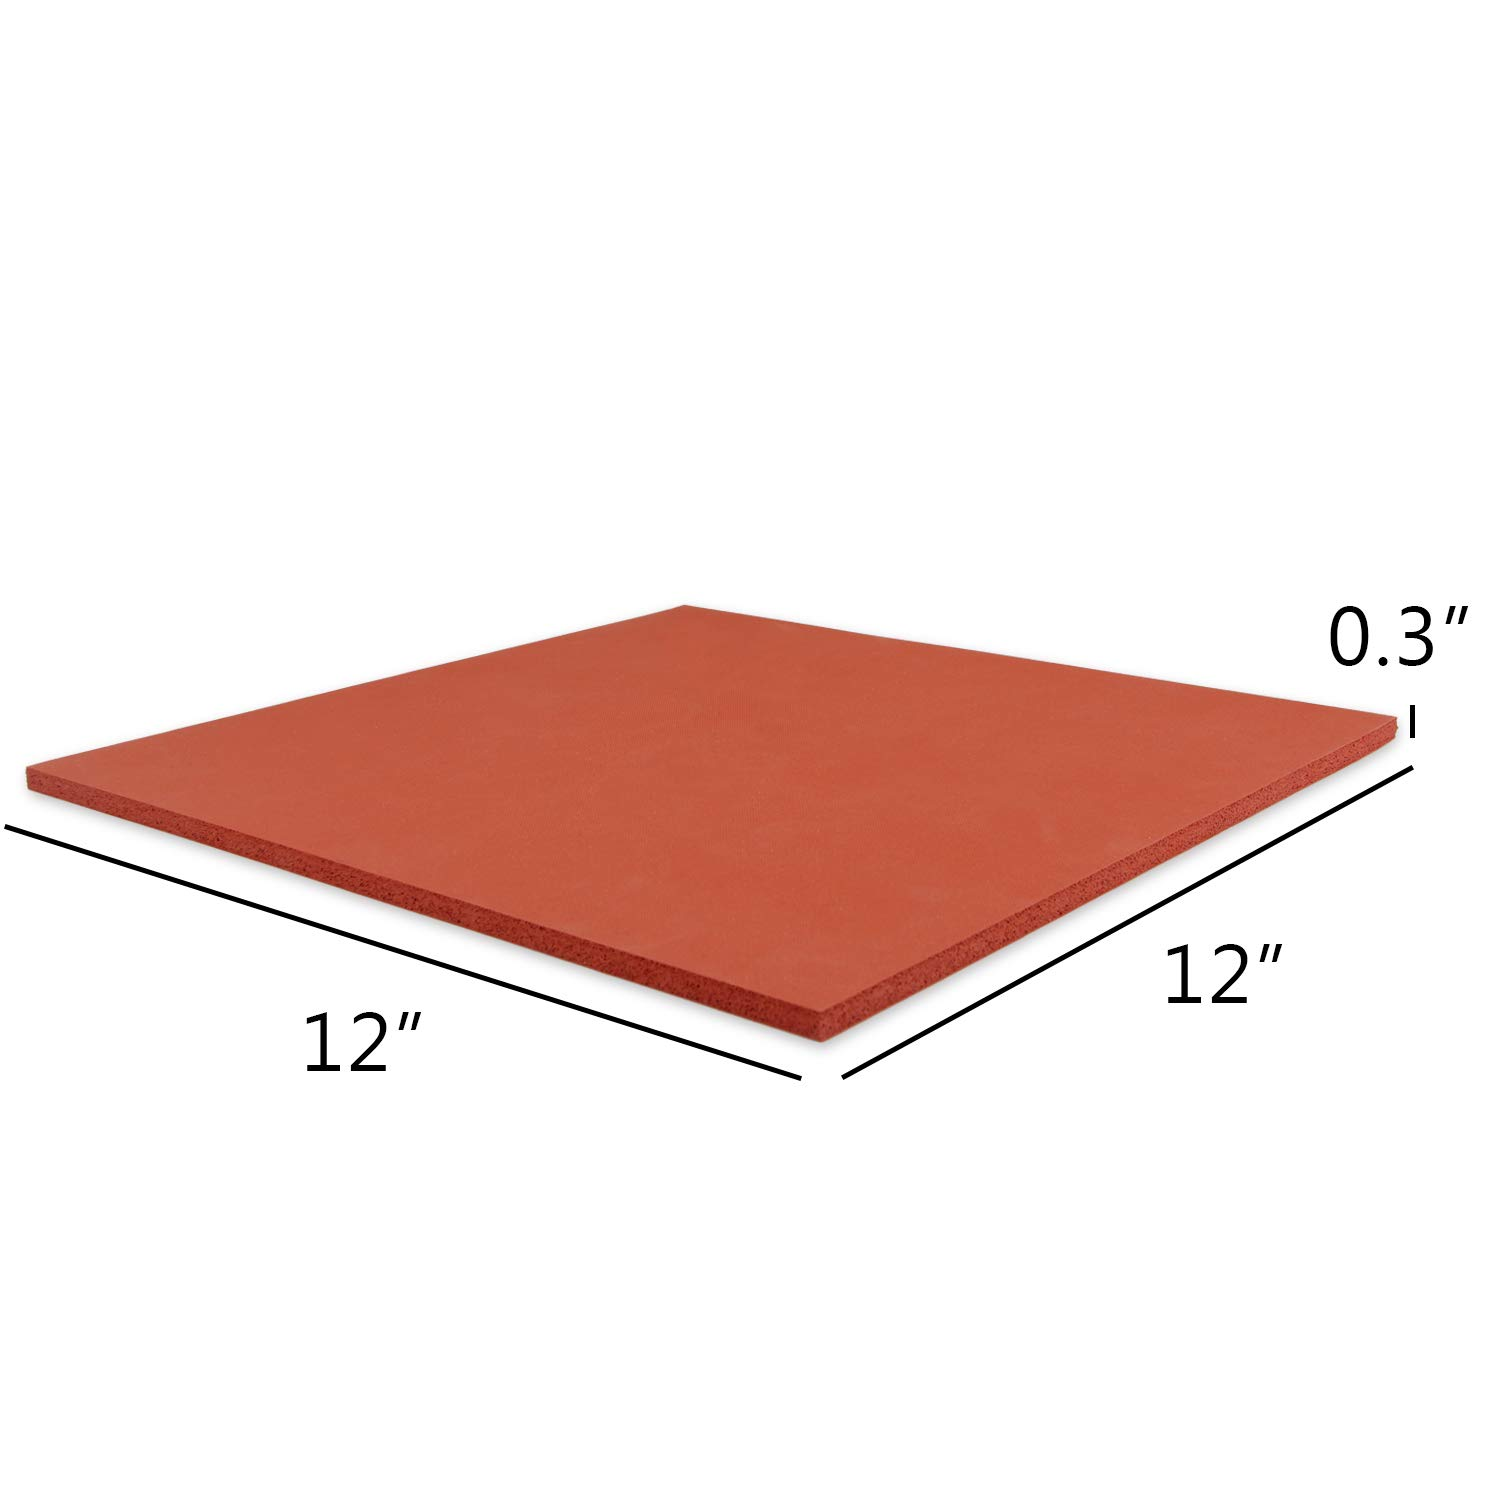 Heat Press Mat Compatible with Cricut Easy Press Luxja 12 x 12 Silicone Pad Compatible with Cricut Easy Press Red